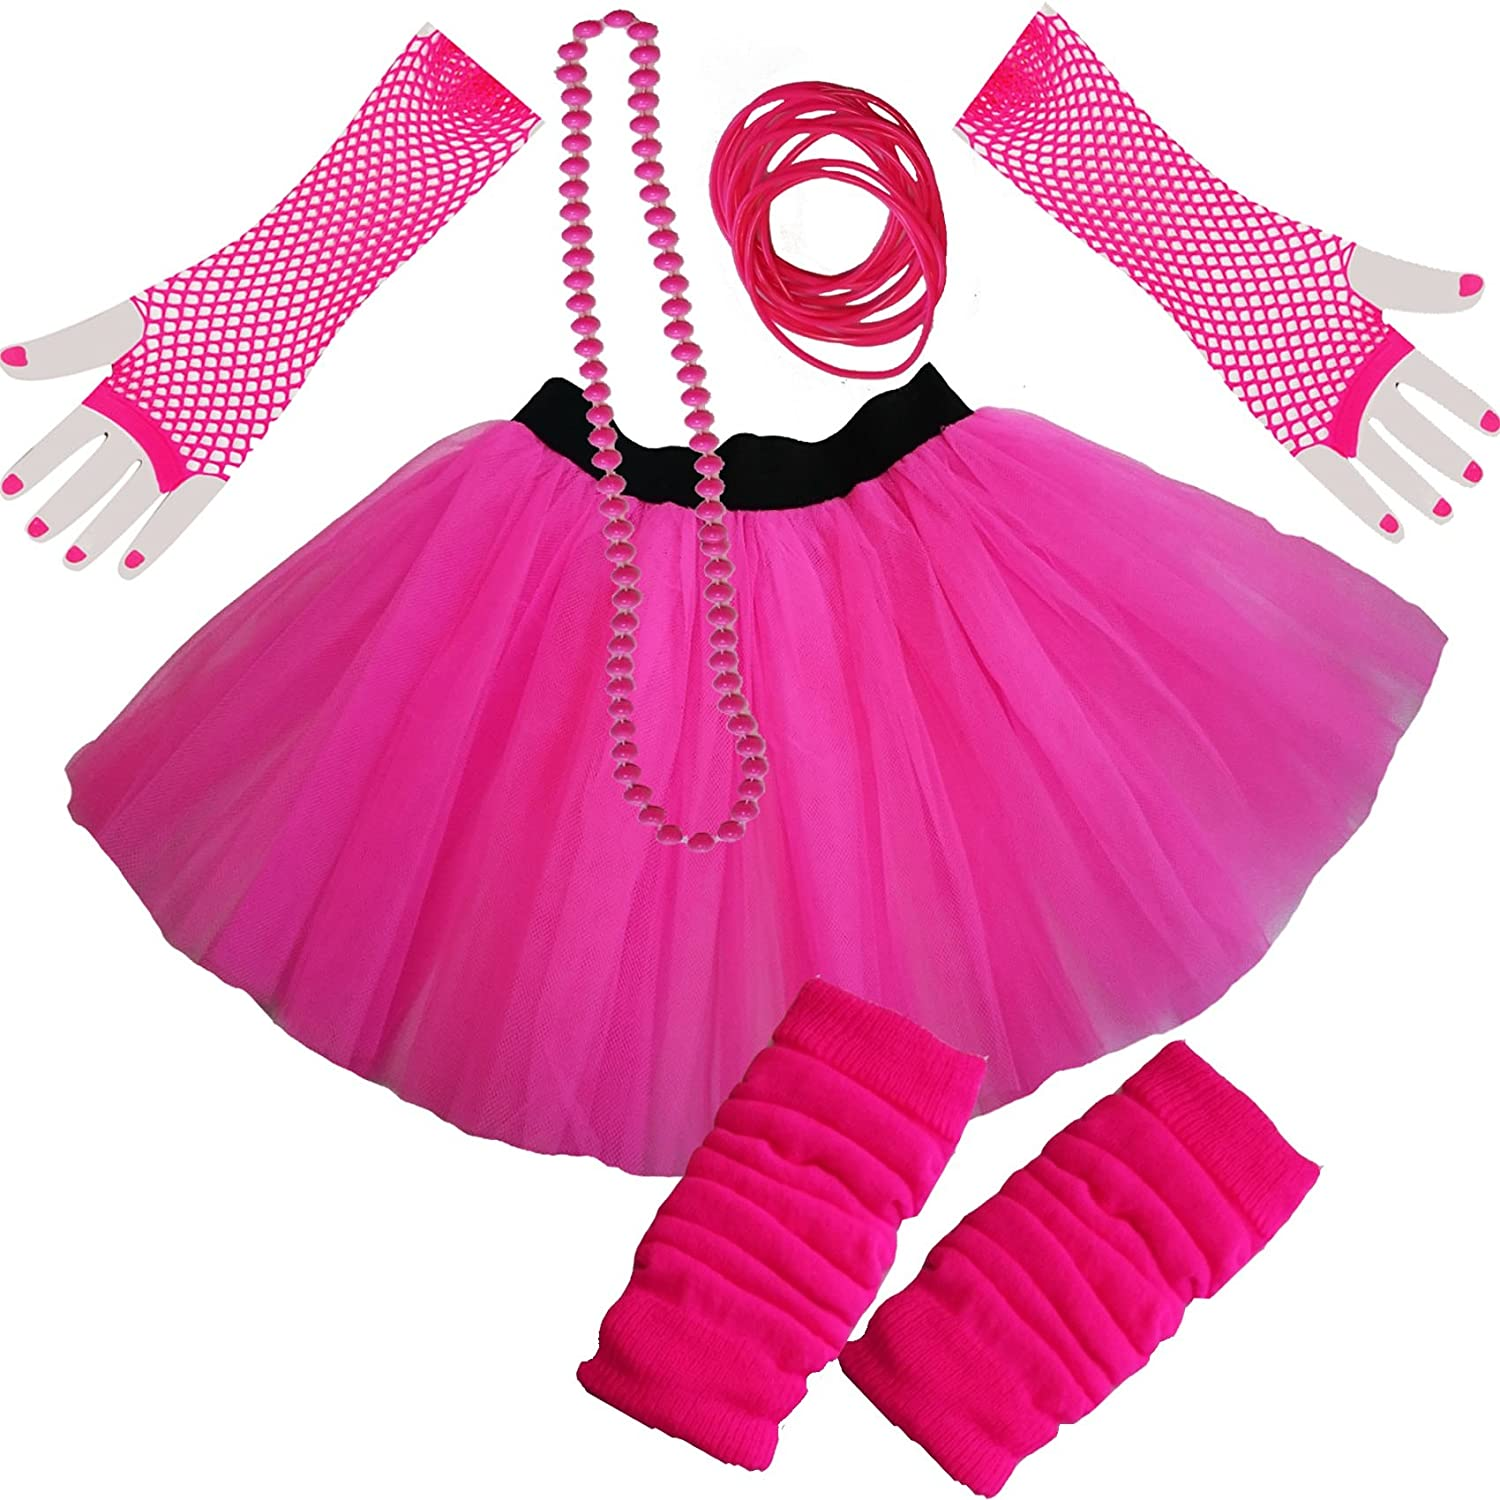 Ladies NEON TUTU SKIRT LEGWARMERS GLOVES 5 piece set (UK 8-14, PINK)